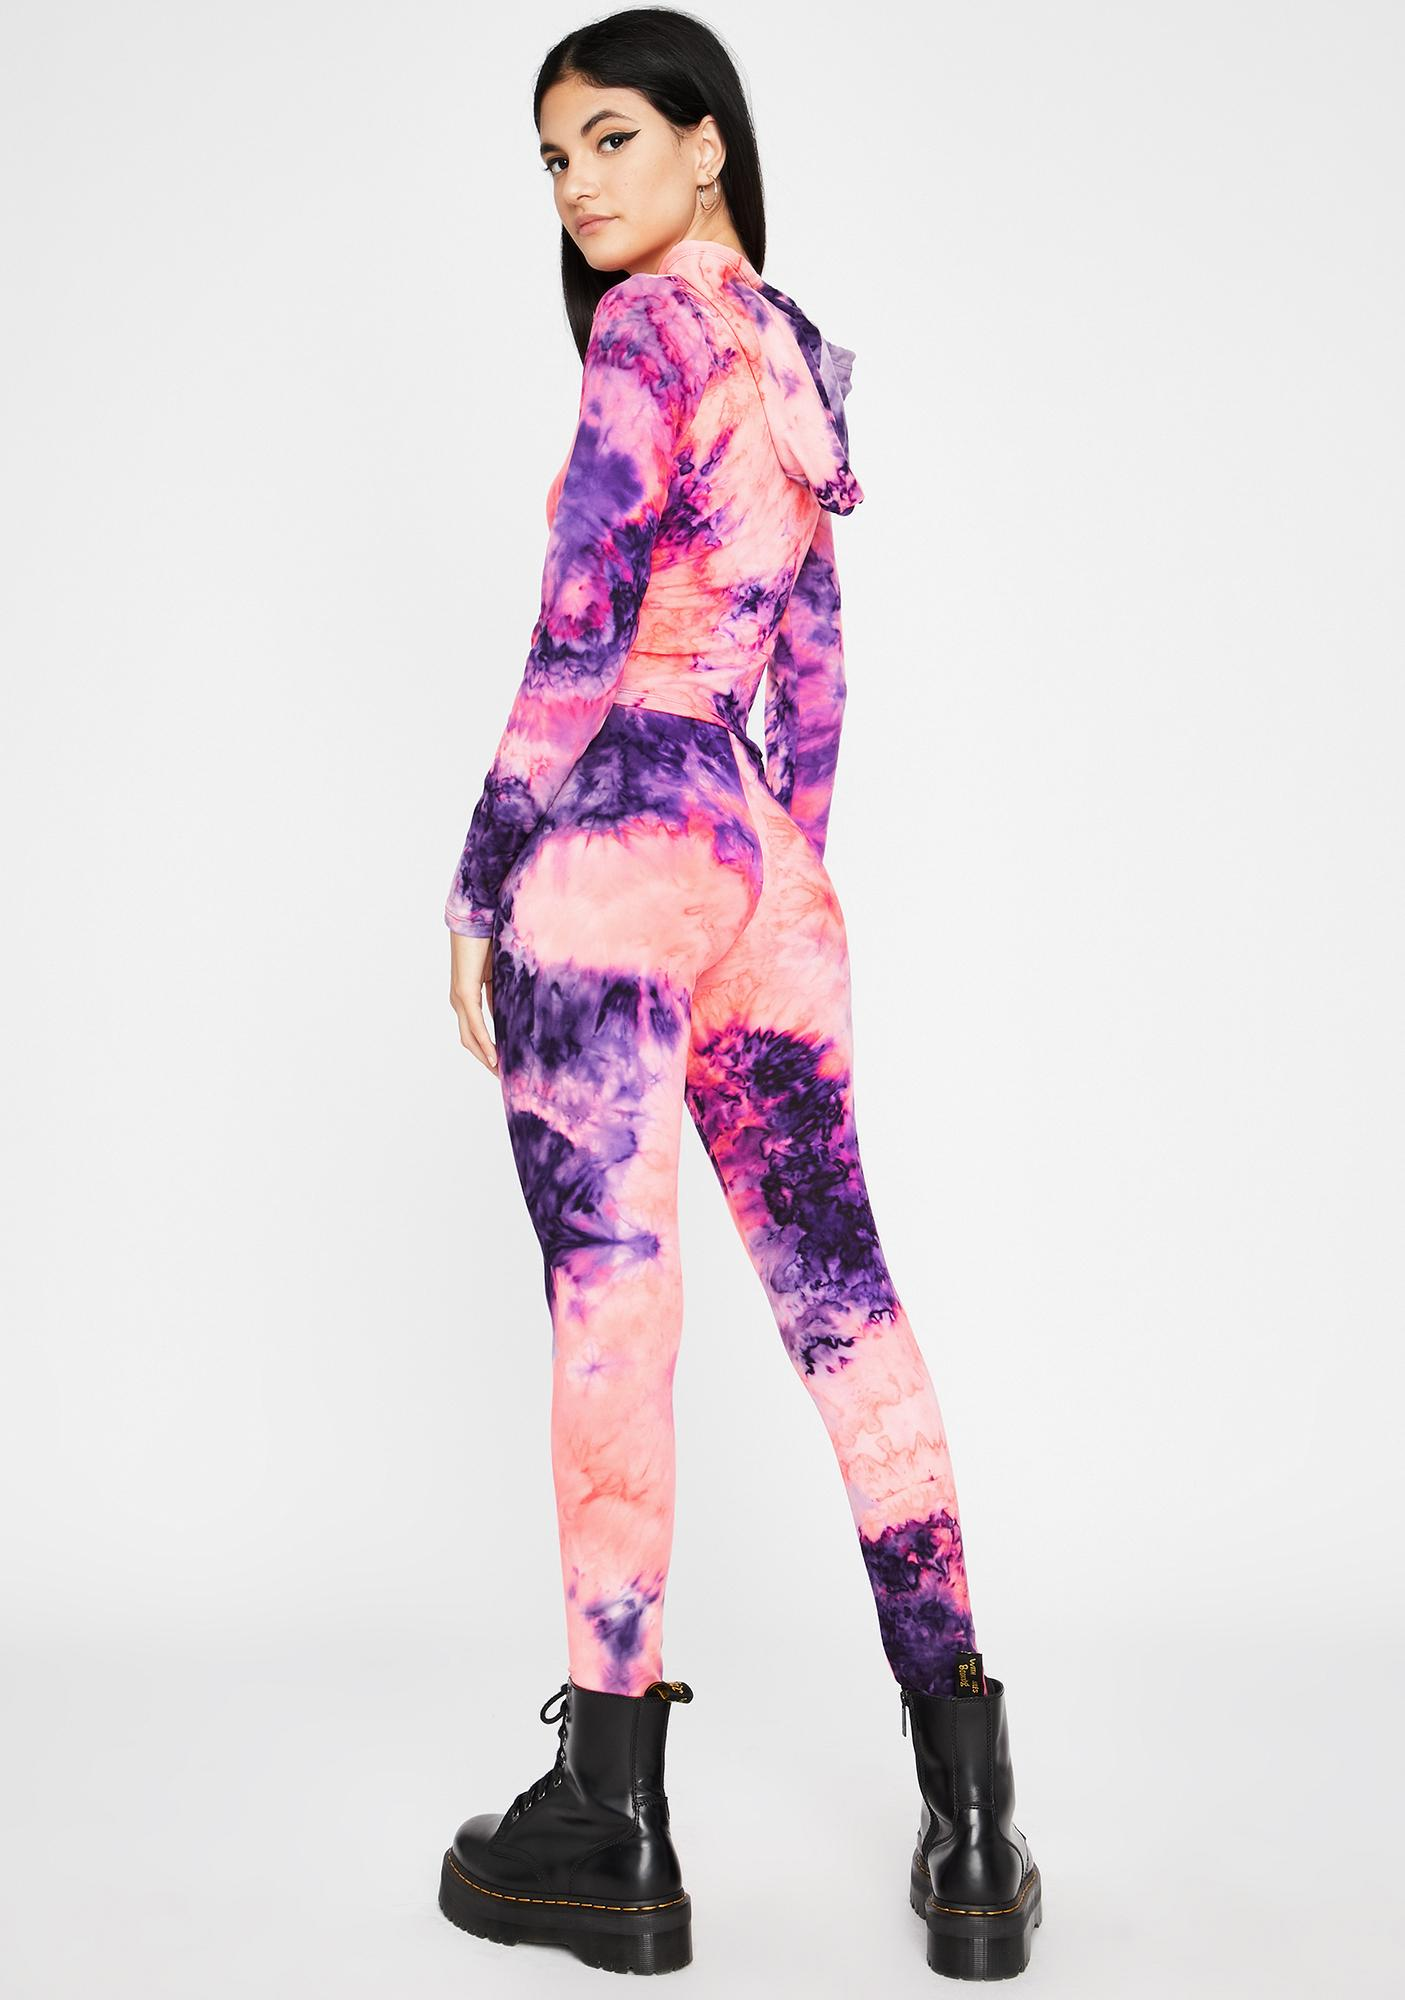 Trippy Chillin' Legging Set